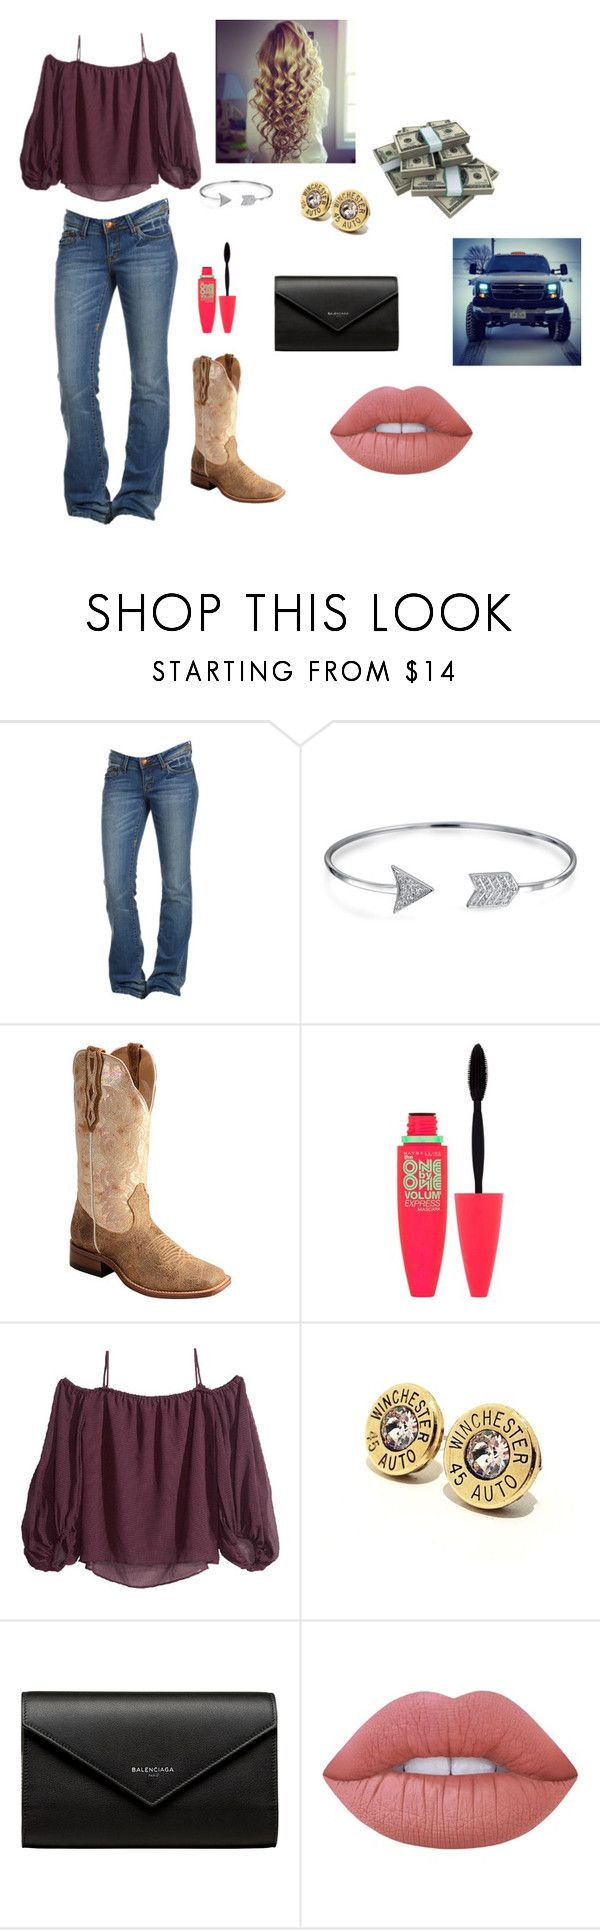 """""""Going out"""" by itsyagirlhar on Polyvore featuring Bling Jewelry, Maybelline, Balenciaga and Lime Crime"""